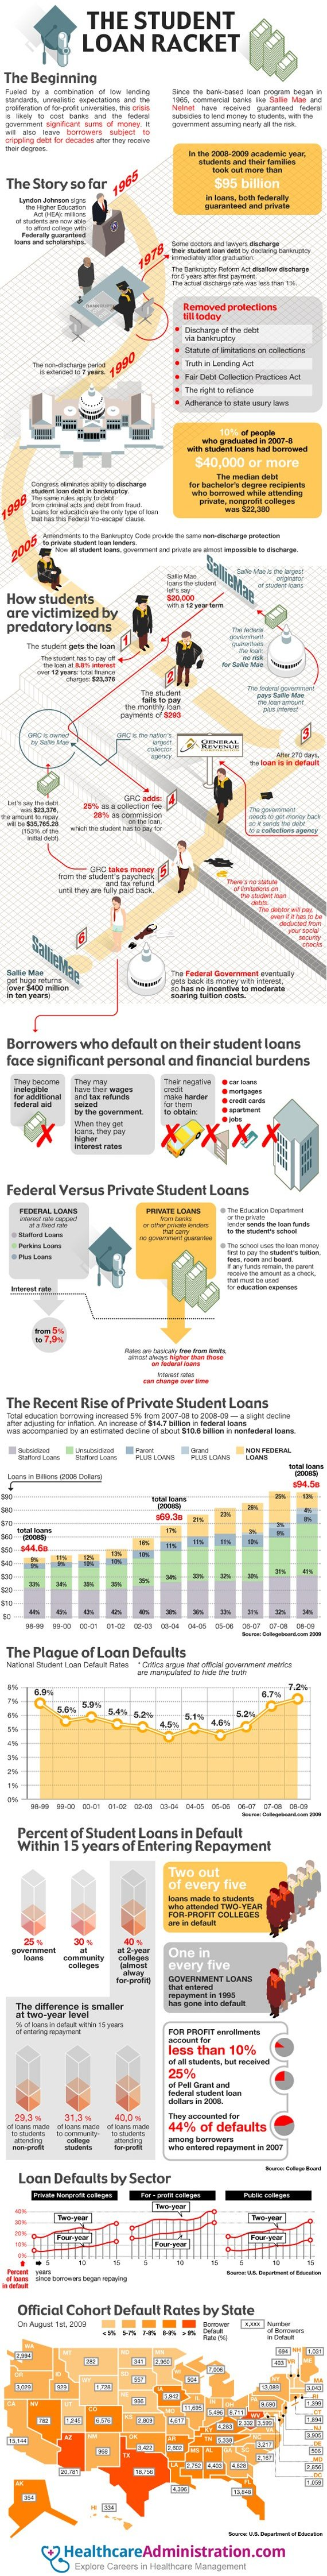 The Truth About Student Loans